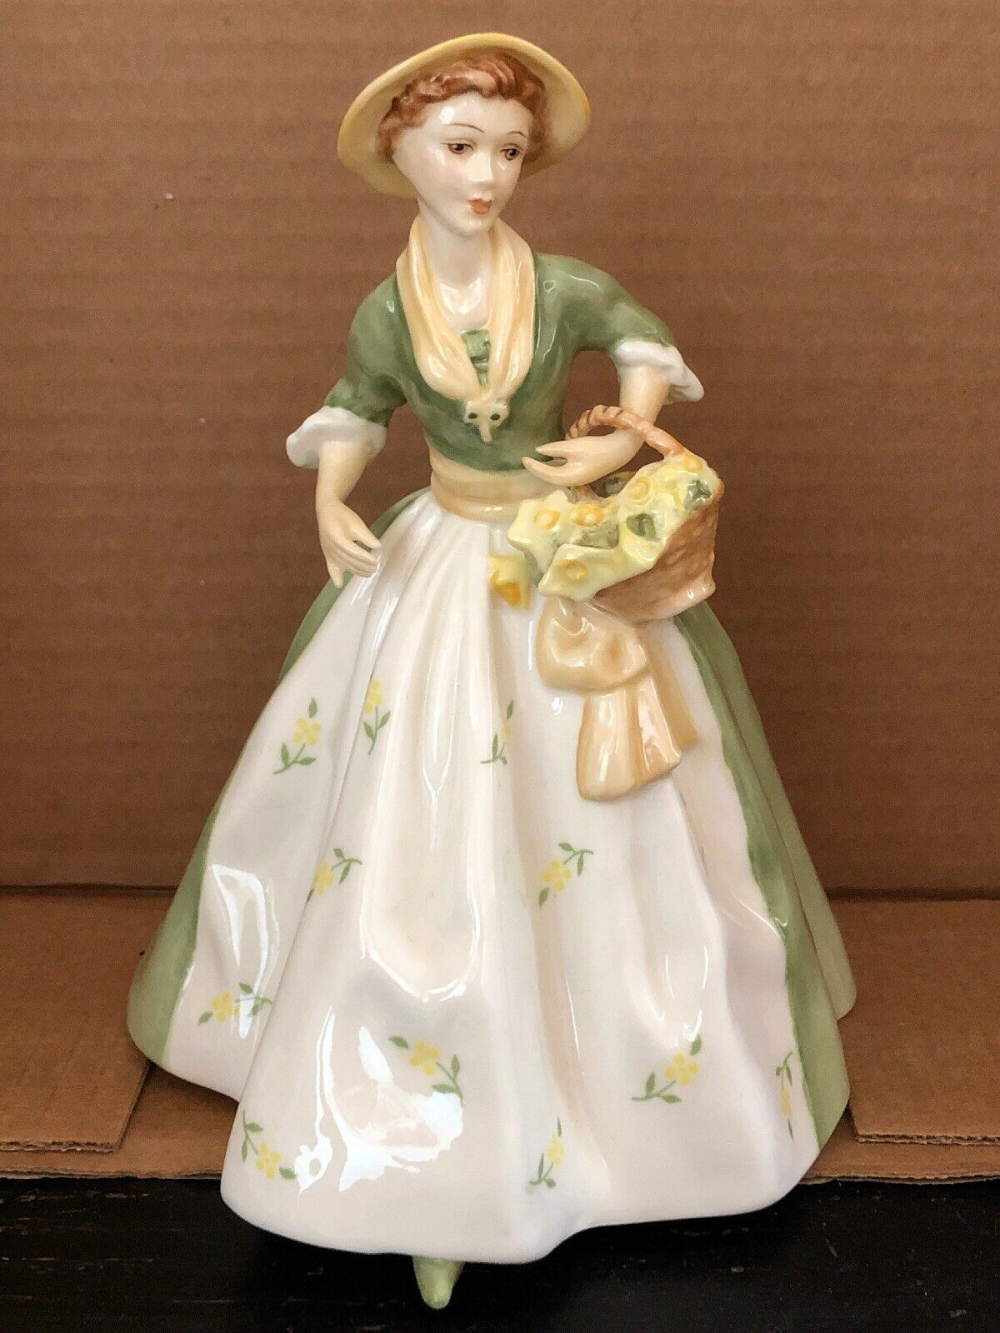 1982 Royal Worcester Porcelain Spring Morn Lady Figurine 7 Tall F G Doughty Ebay In 2020 Lady Porcelain Figurines